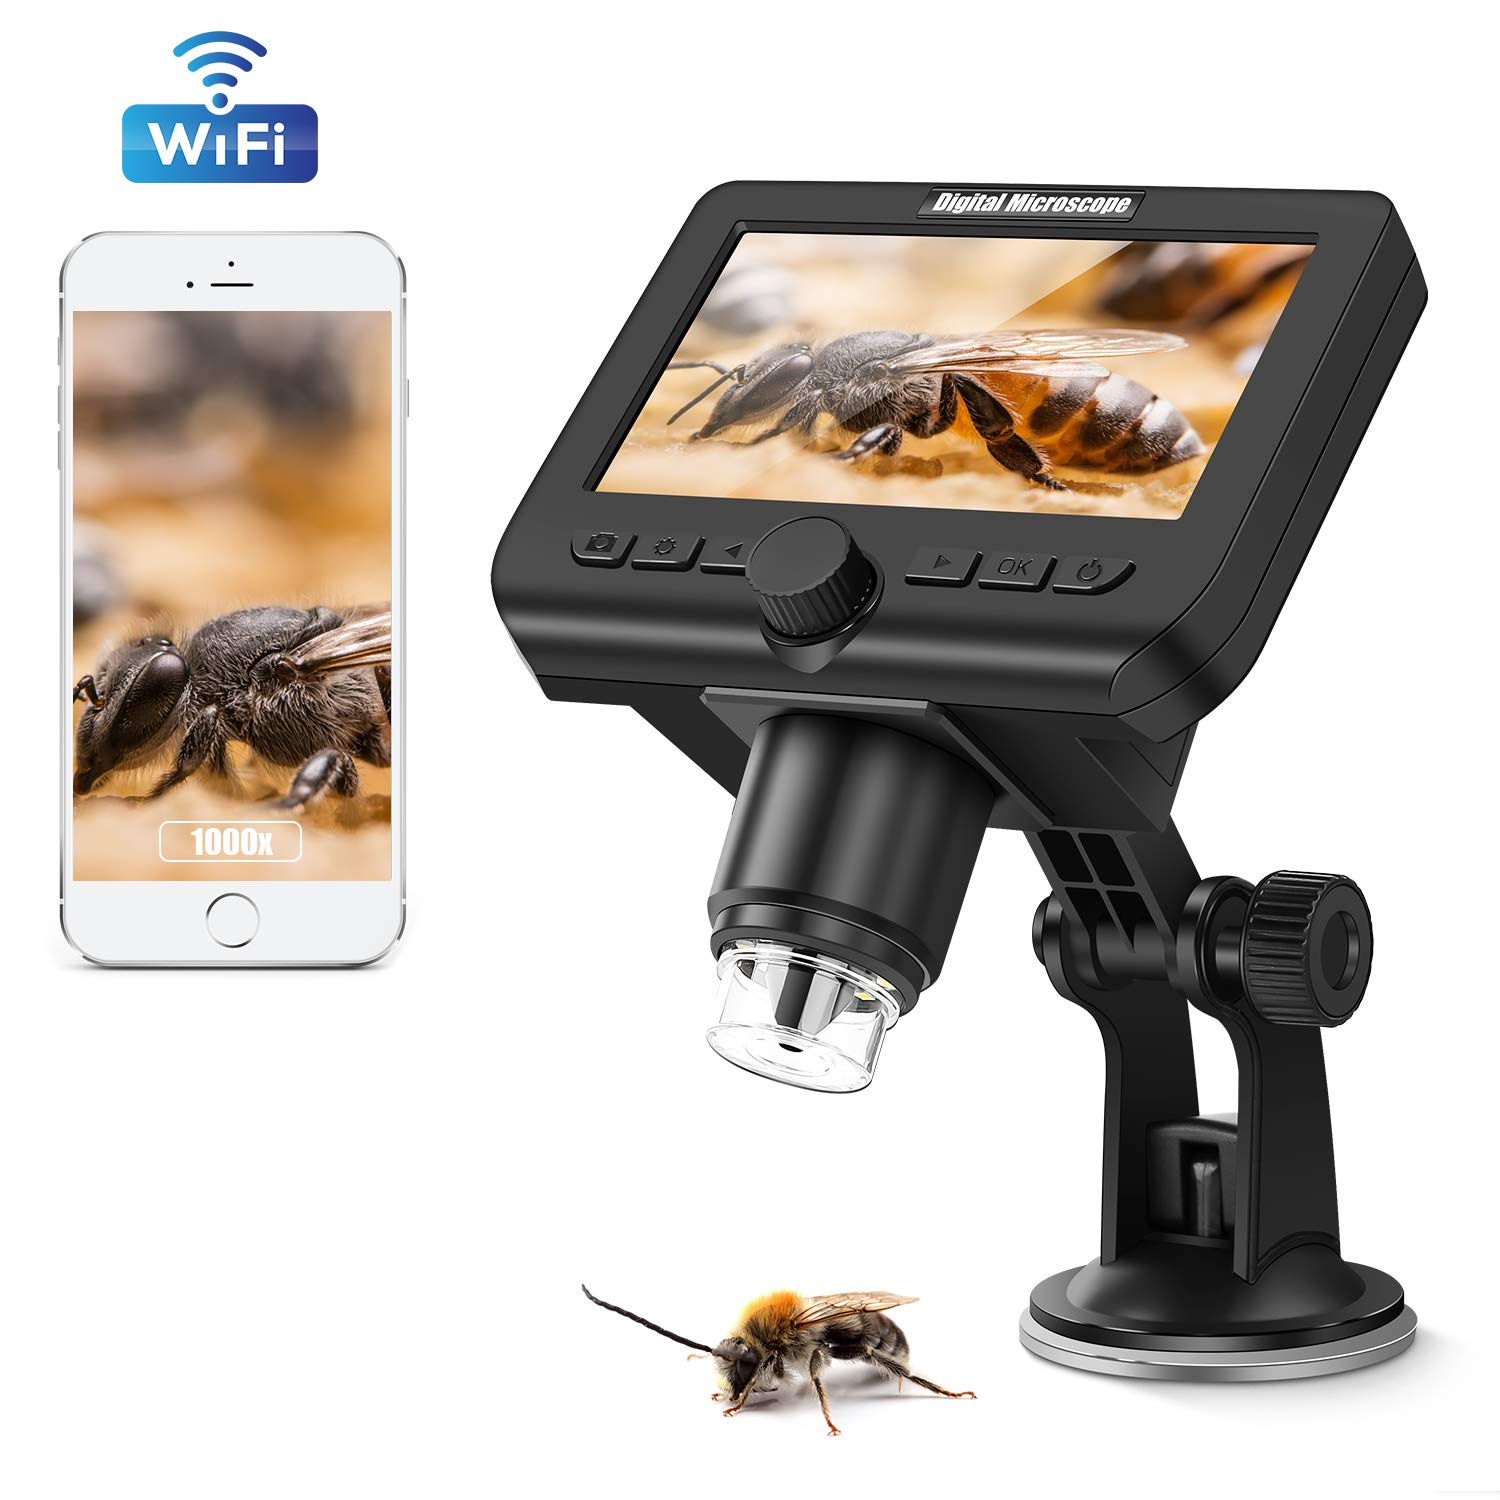 WiFi LCD Digital Microscope 1080P 4.3 inch Screen, VSATEN Wireless 50X-1000X Magnification Zoom USB Microscope Camera 2.0 Megapixels 8 Led Camera Video Recorder for iPhone Android Windows Mac Linux by VSATEN